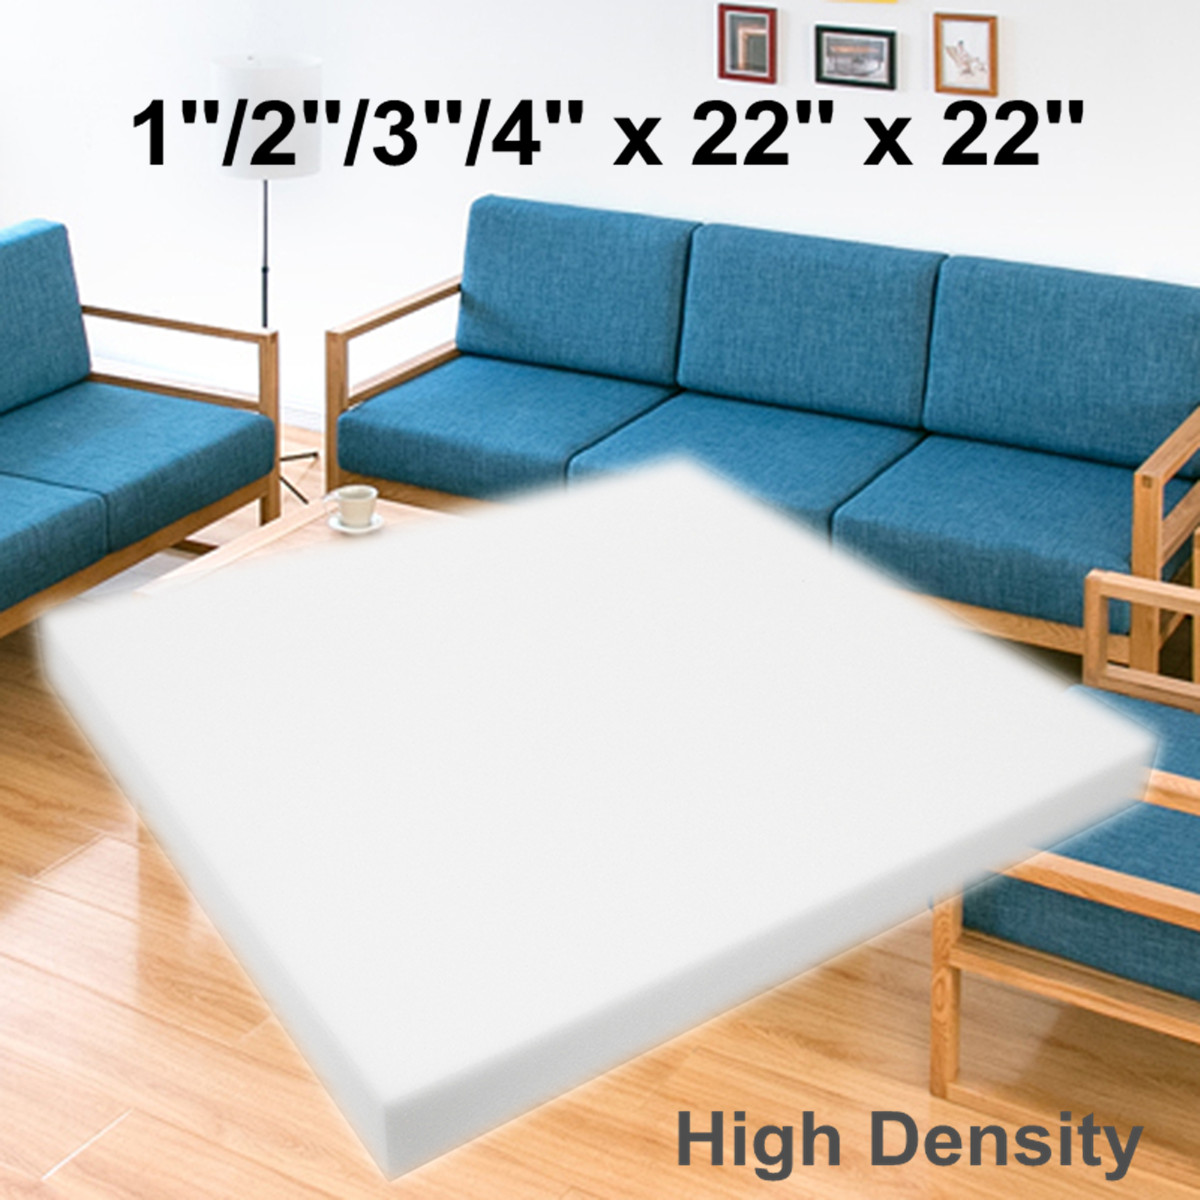 55x55cm High Density Upholstery Cushion Foam Chair Sofa Seat Foam Pad Sheet Mattress Bed Floor High Density Upholstery Cushion